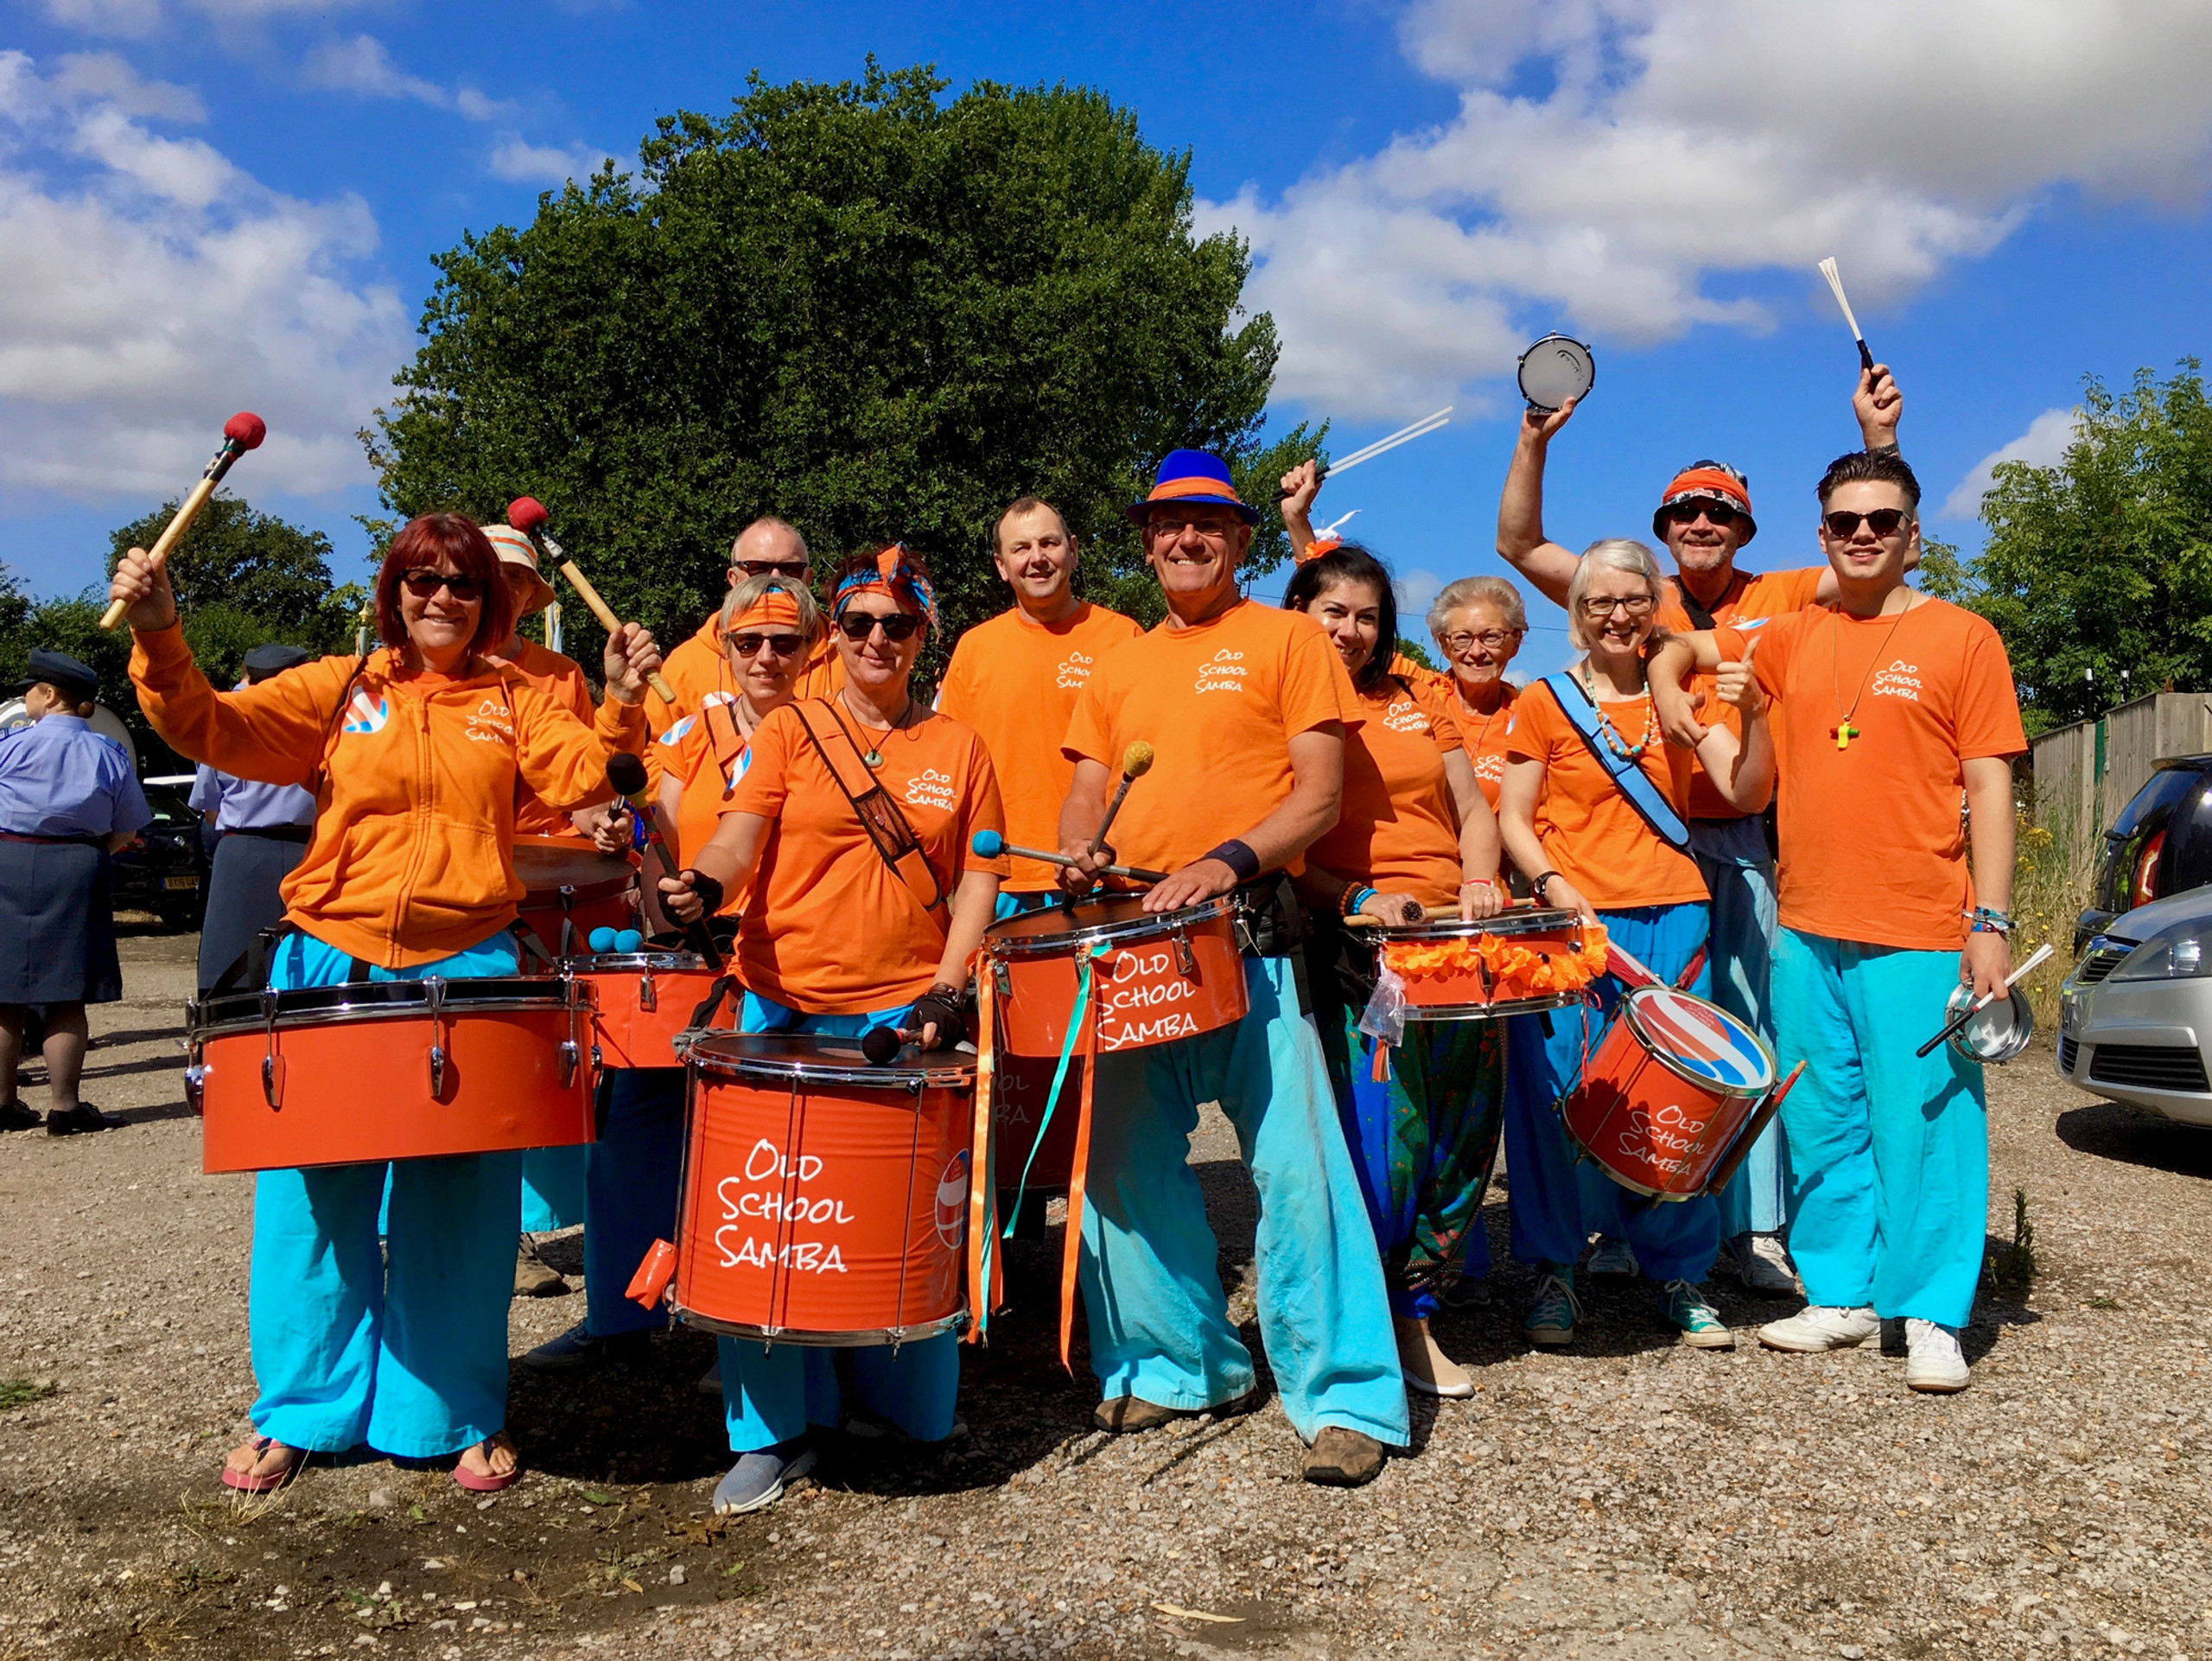 Old School Samba at the New Romney Country Fayre 2018